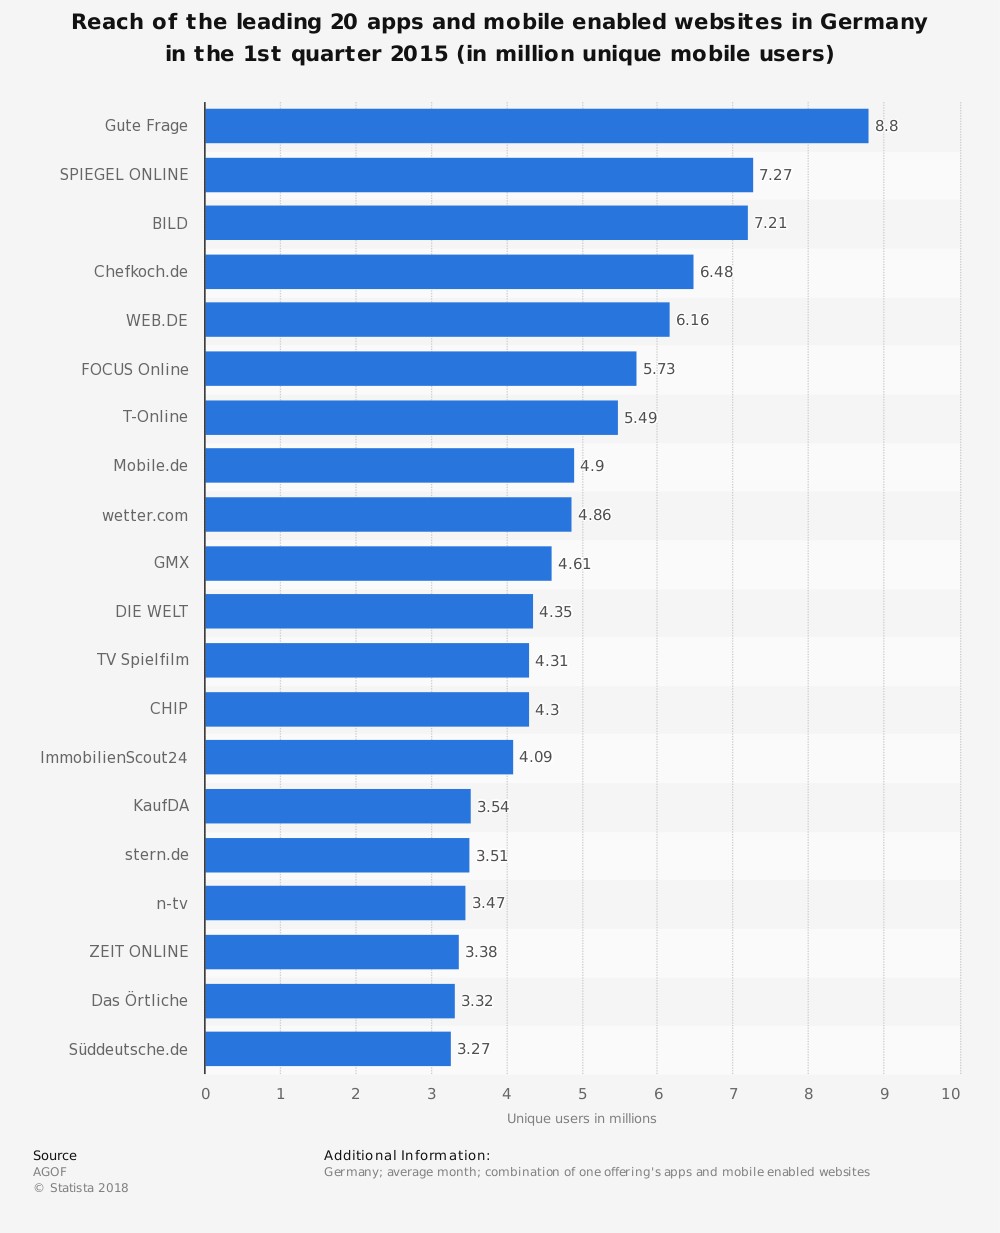 Statistic: Reach of the leading 20 apps and mobile enabled websites in Germany in the 1st quarter 2015 (in million unique mobile users) | Statista